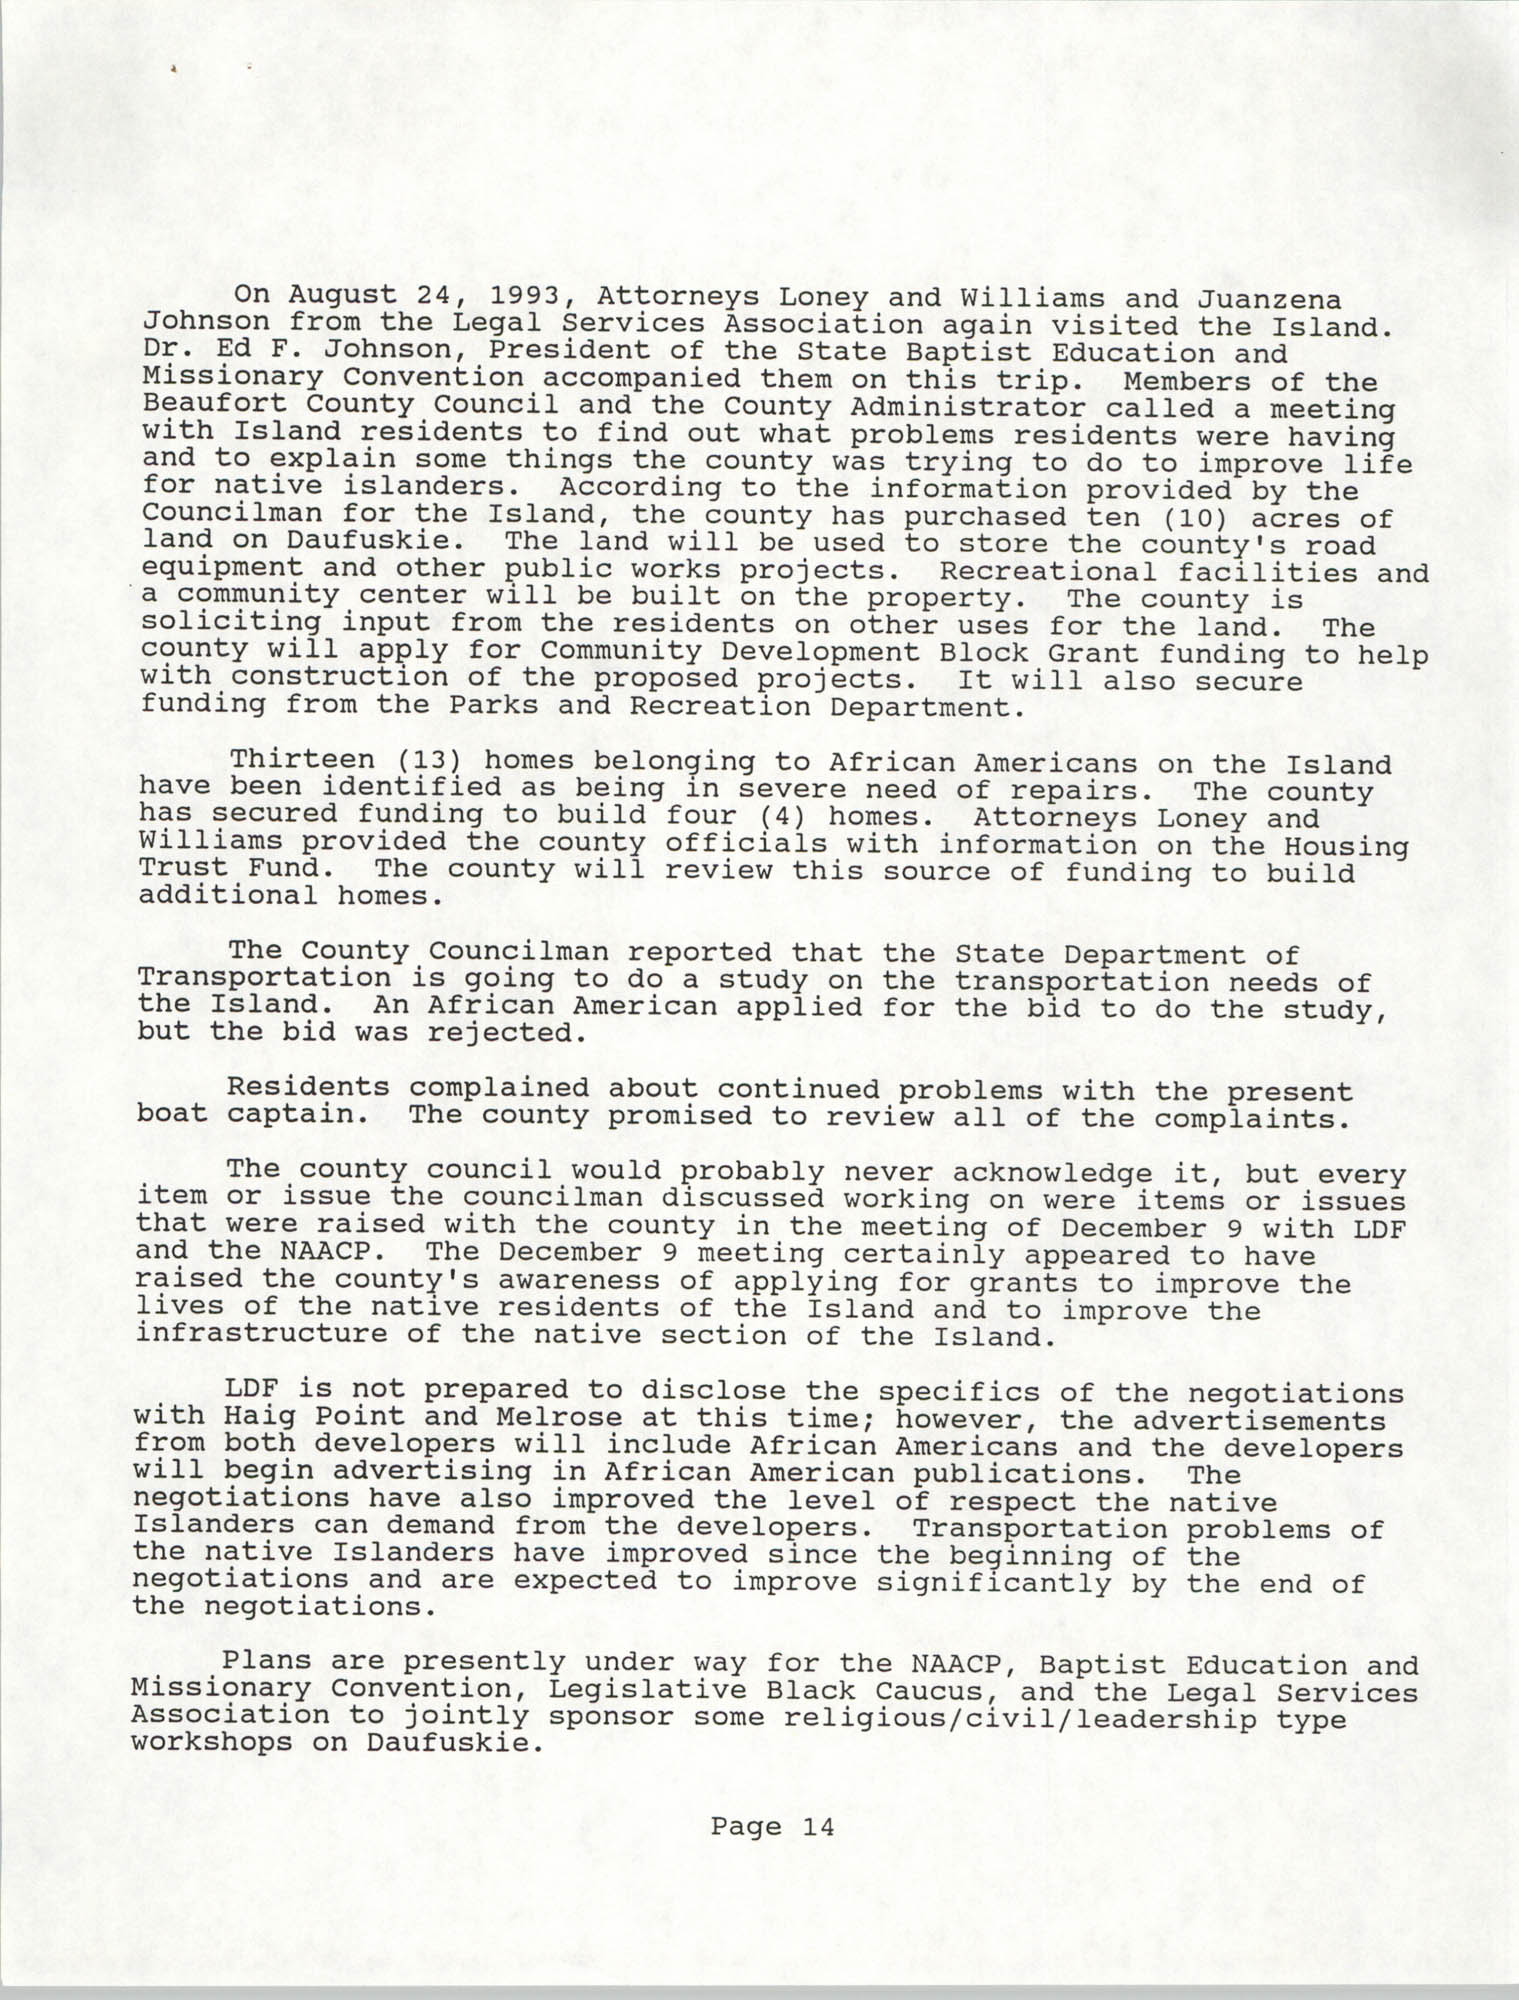 South Carolina Conference of Branches of the NAACP, Annual Report, October 9, 1993, Page 14